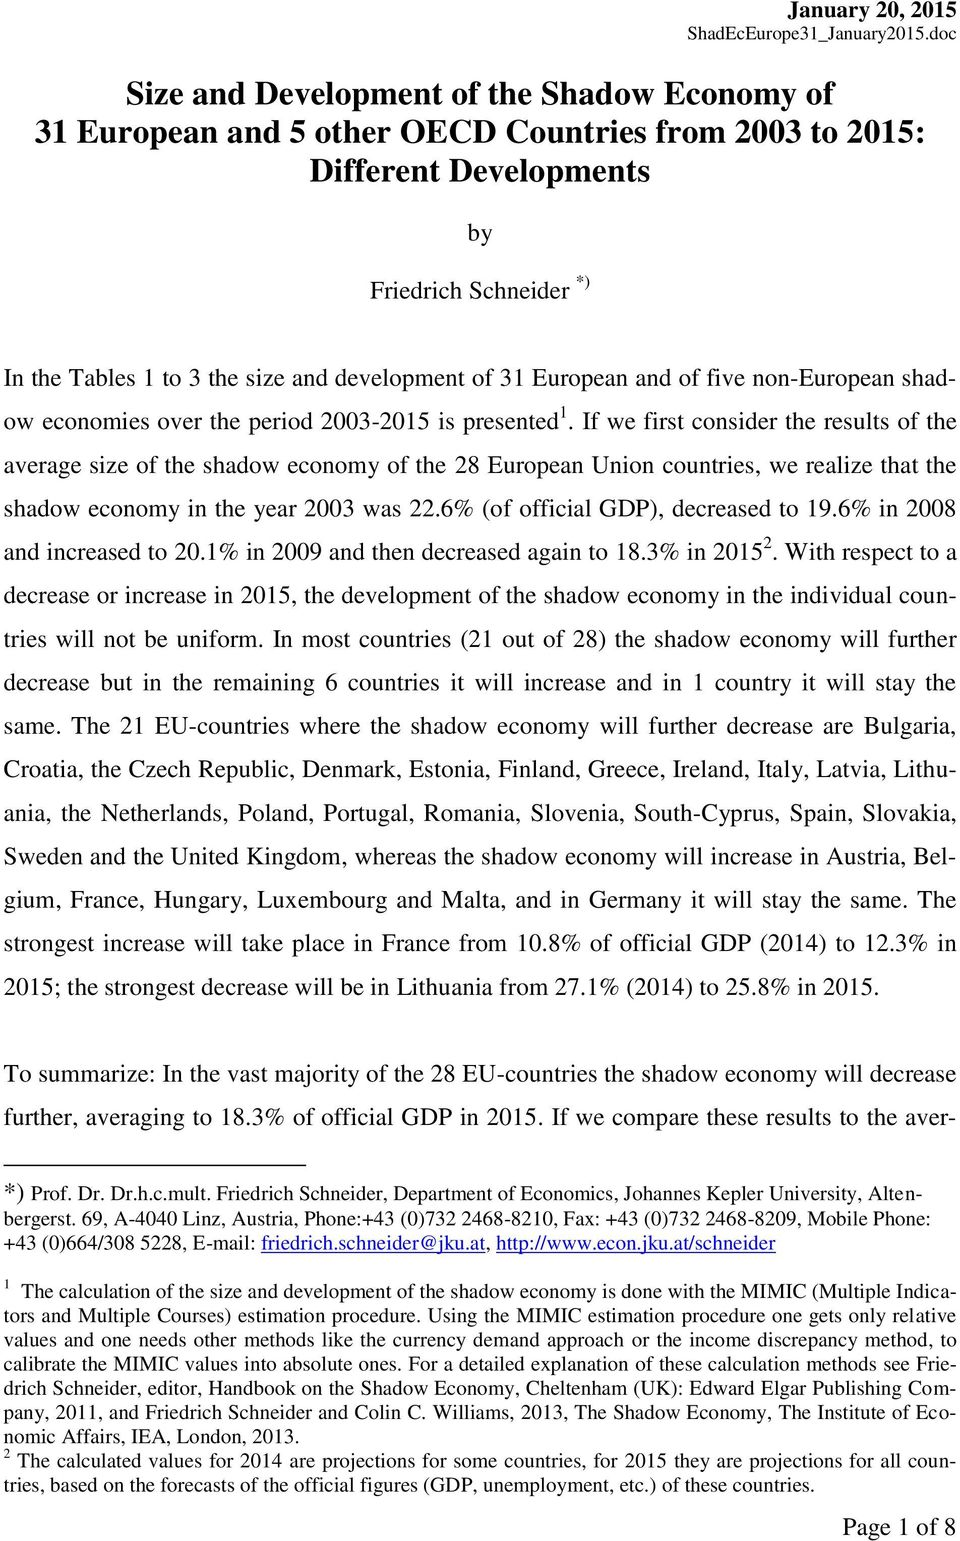 development of 31 European and of five non-european shadow economies over the period 2003-2015 is presented 1.